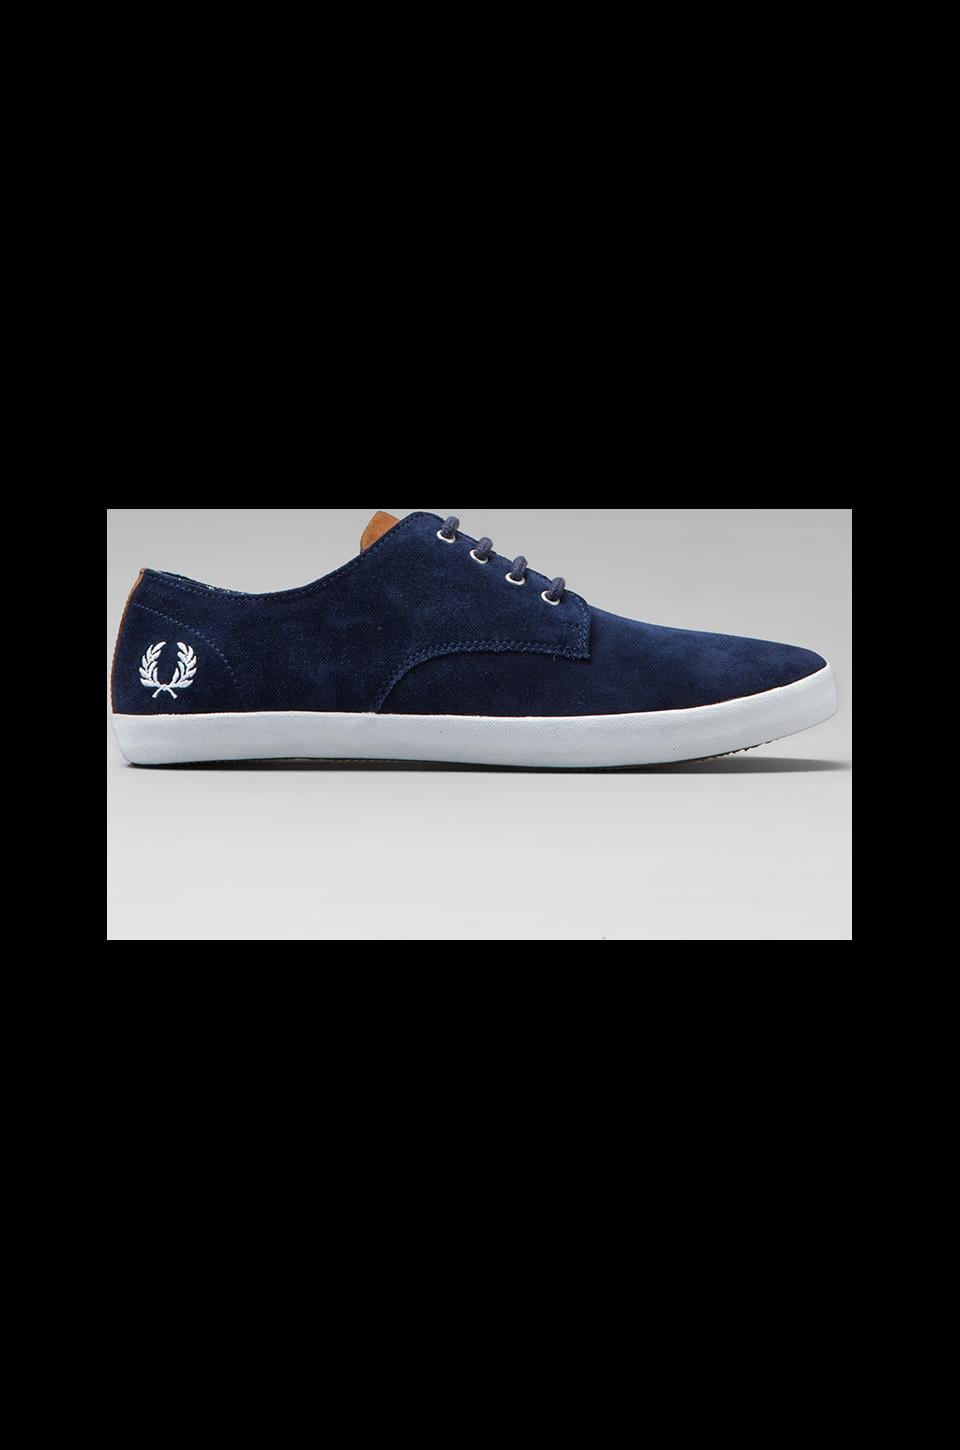 Fred Perry Foxx Suede in Carbon Blue